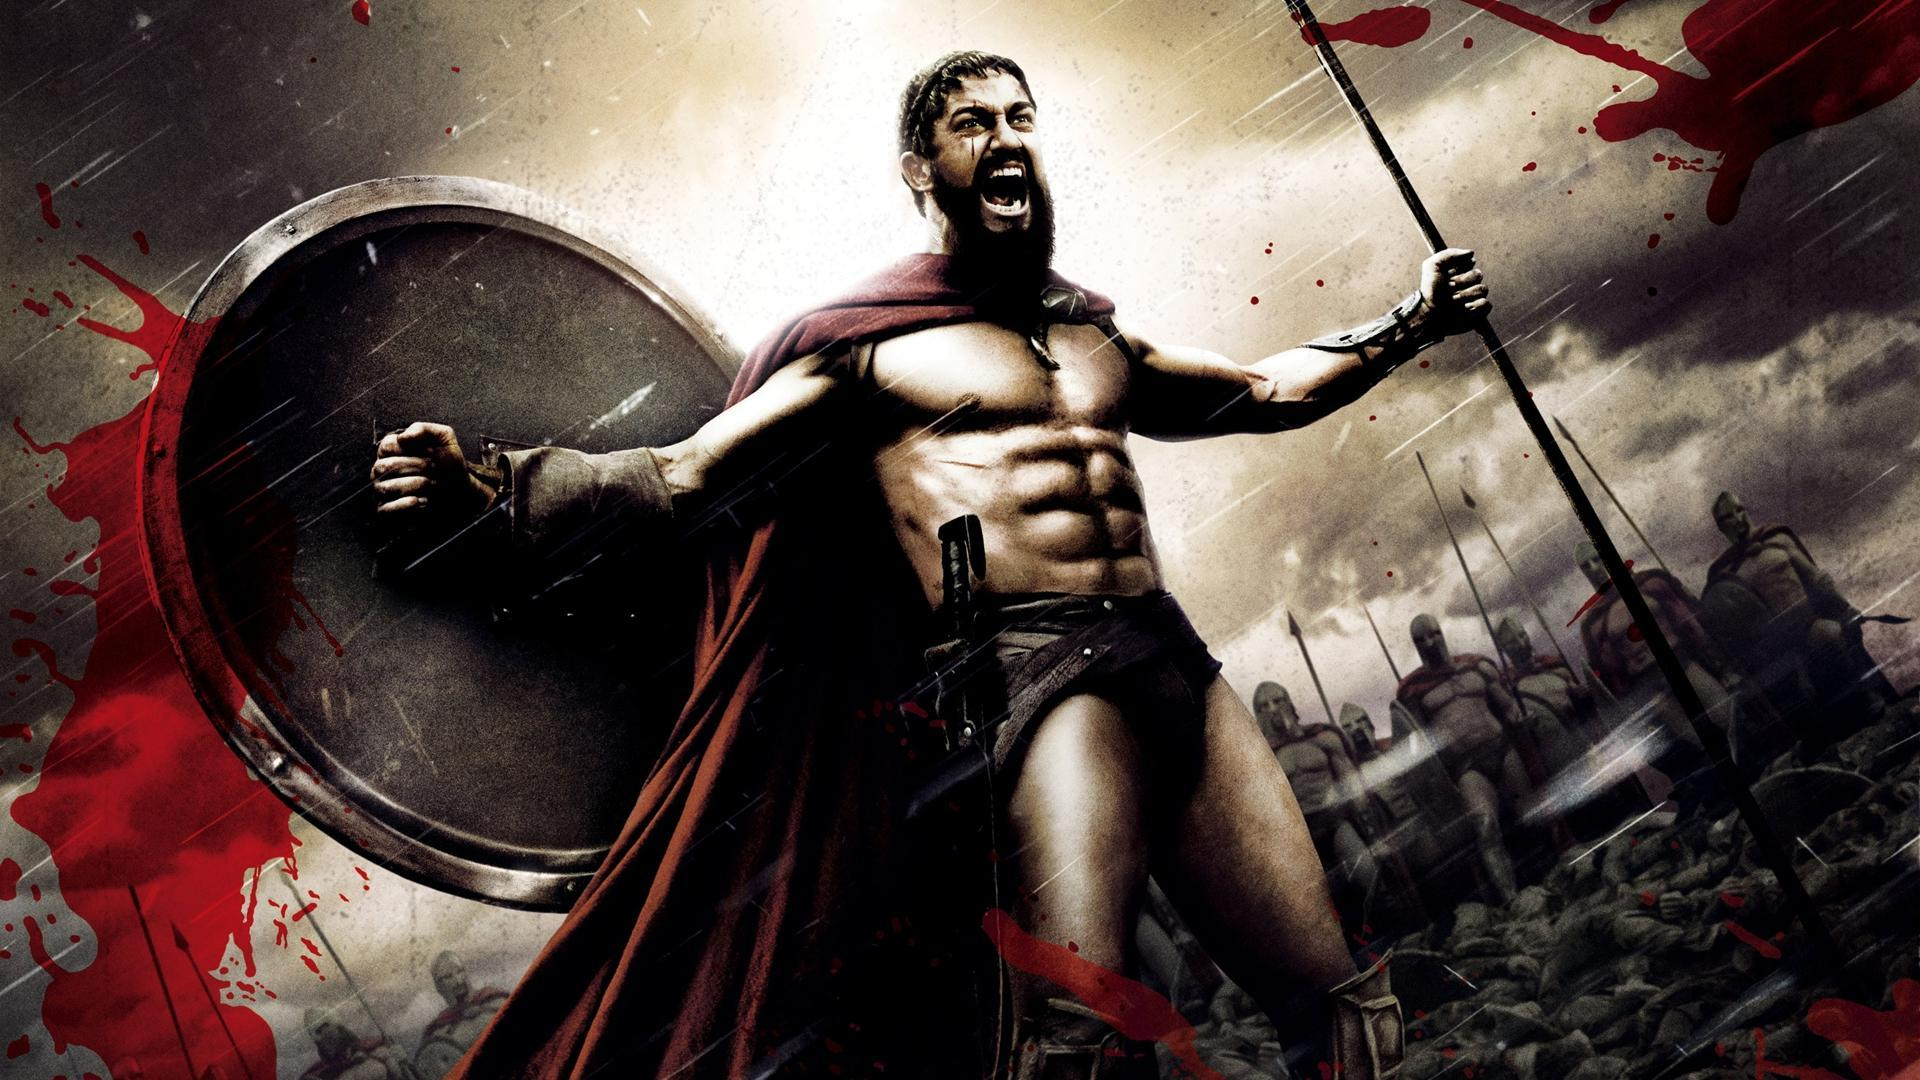 300 movie h.d wallpapers - wallpaper cave